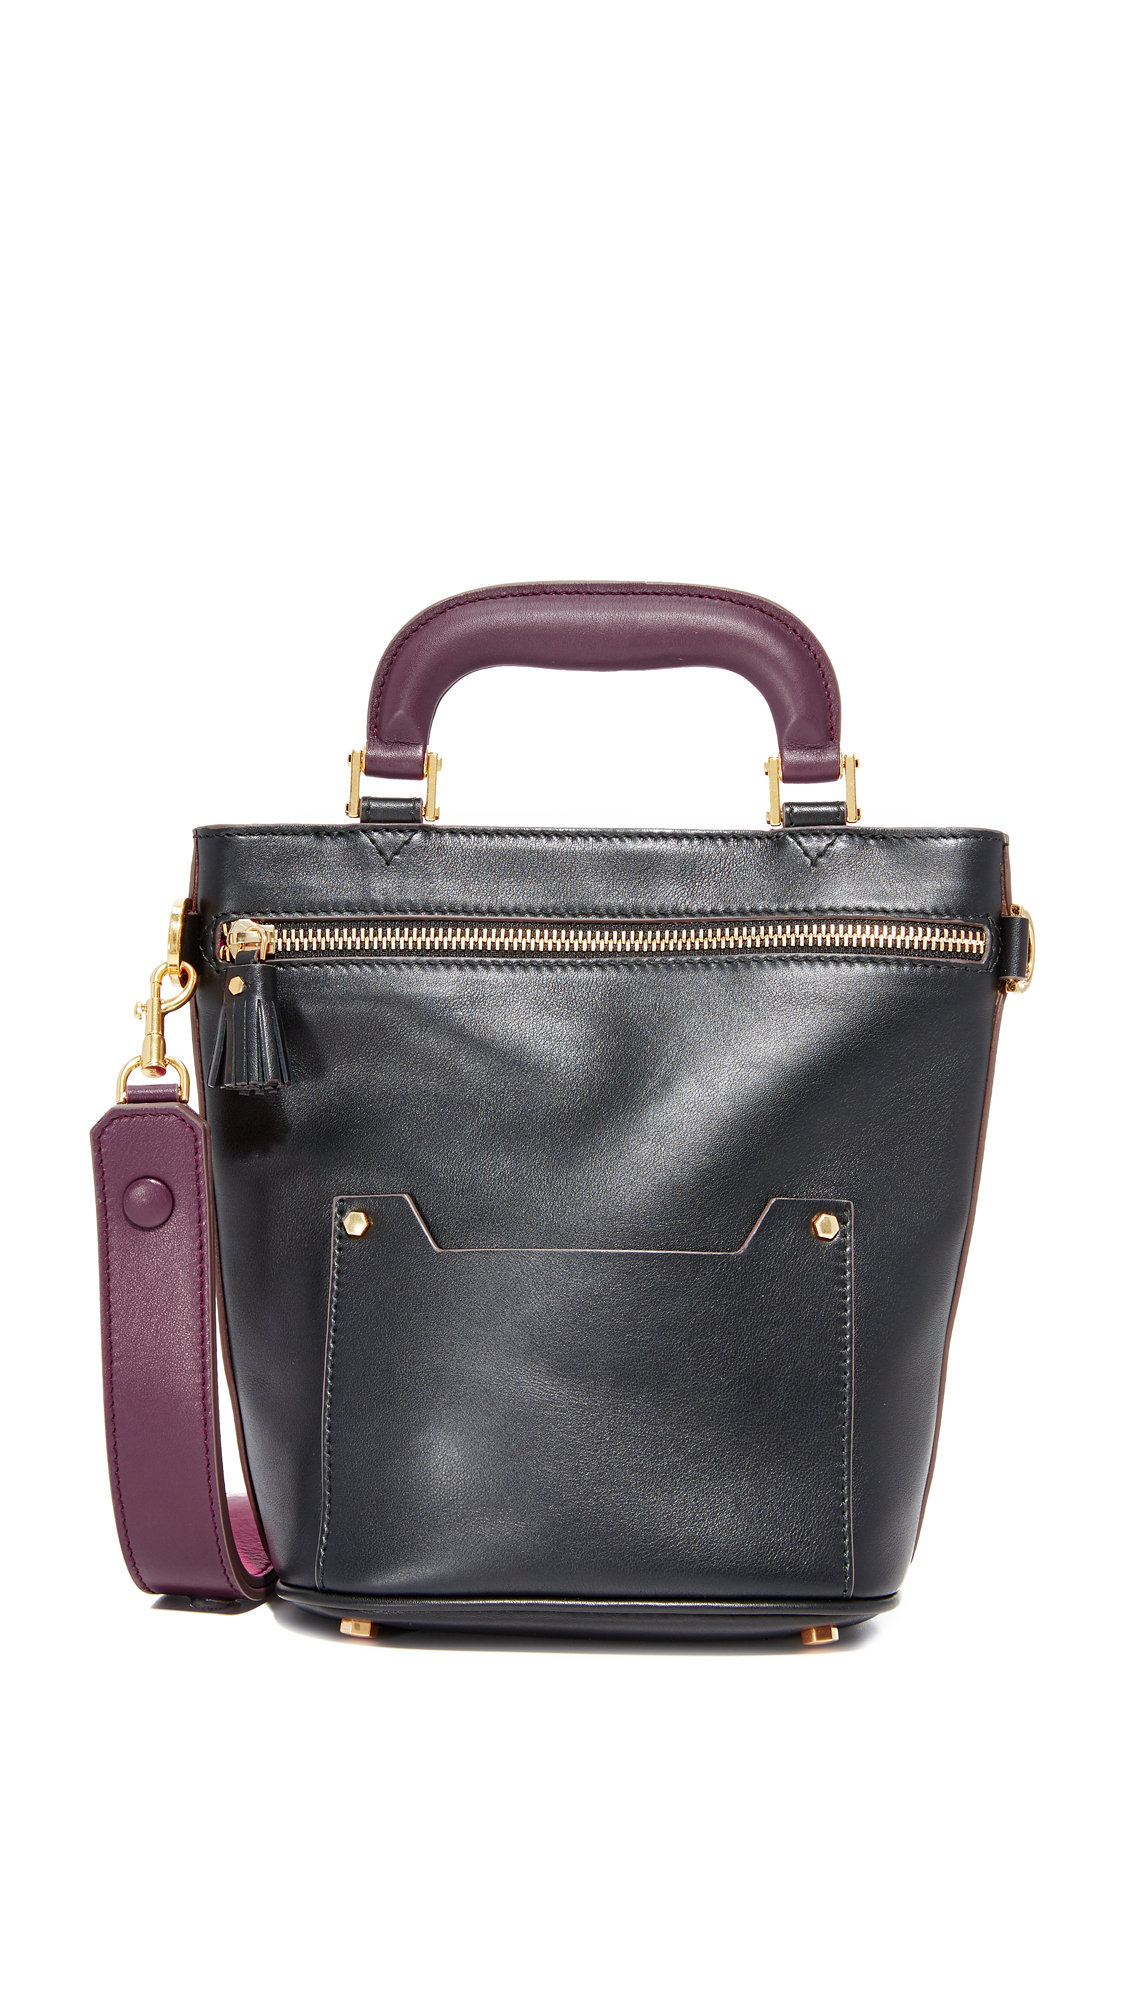 Anya Hindmarch Orsett Mini Top Handle Bag - Black